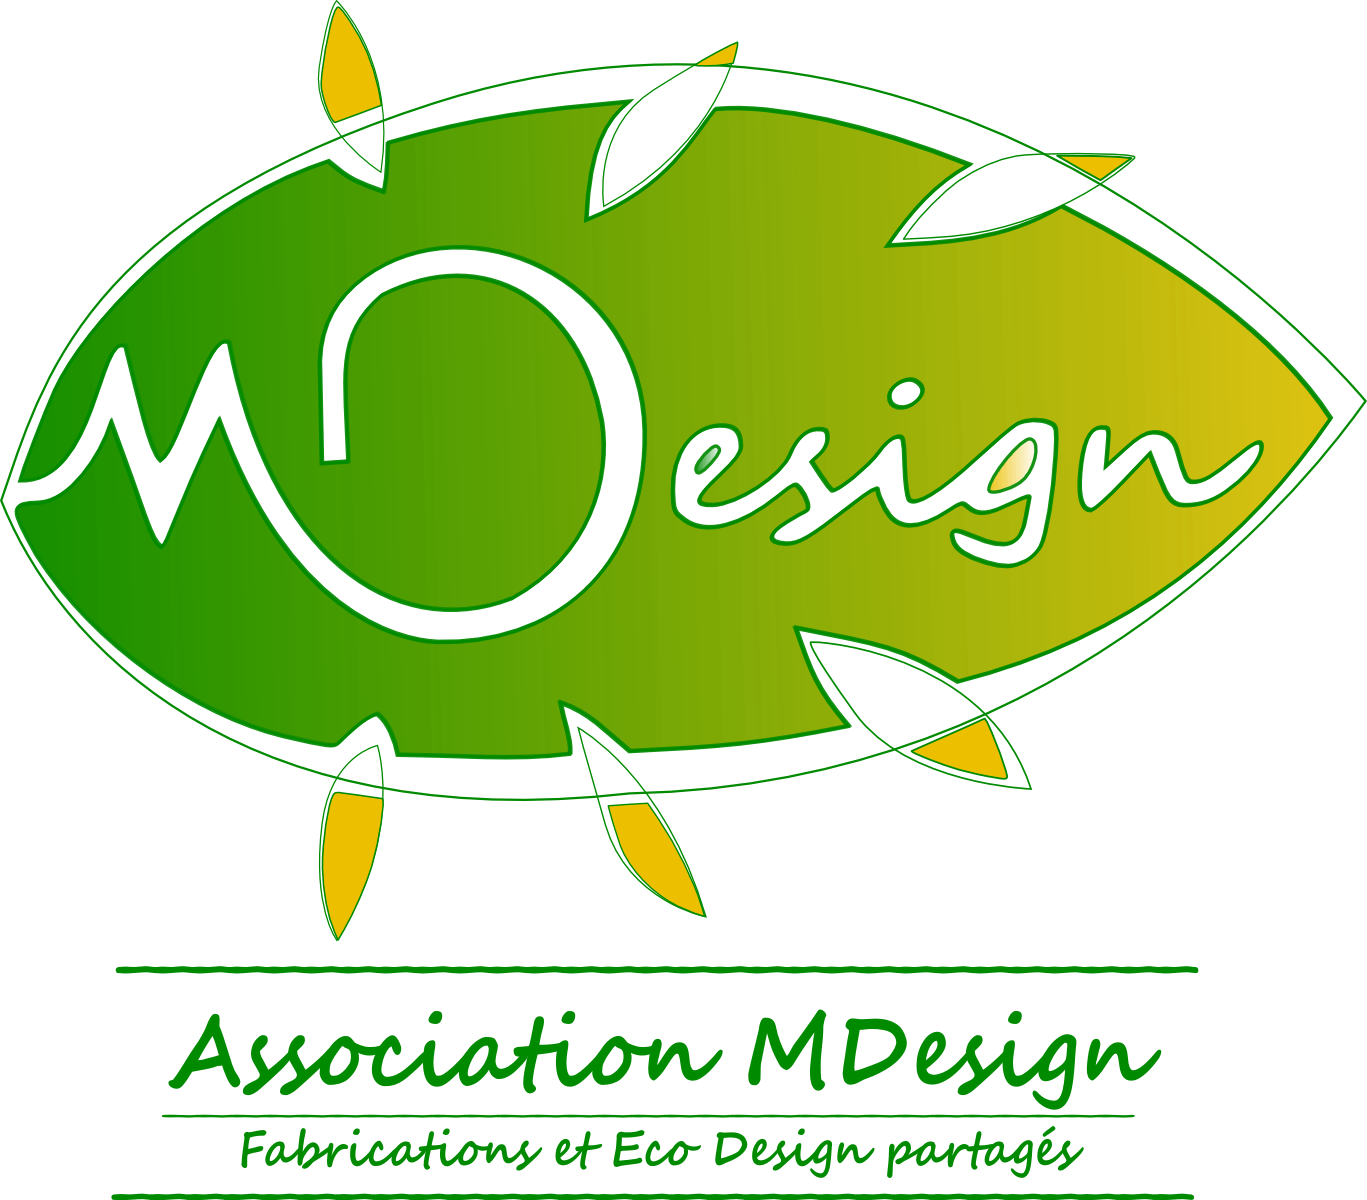 Association - Fablab MDesign